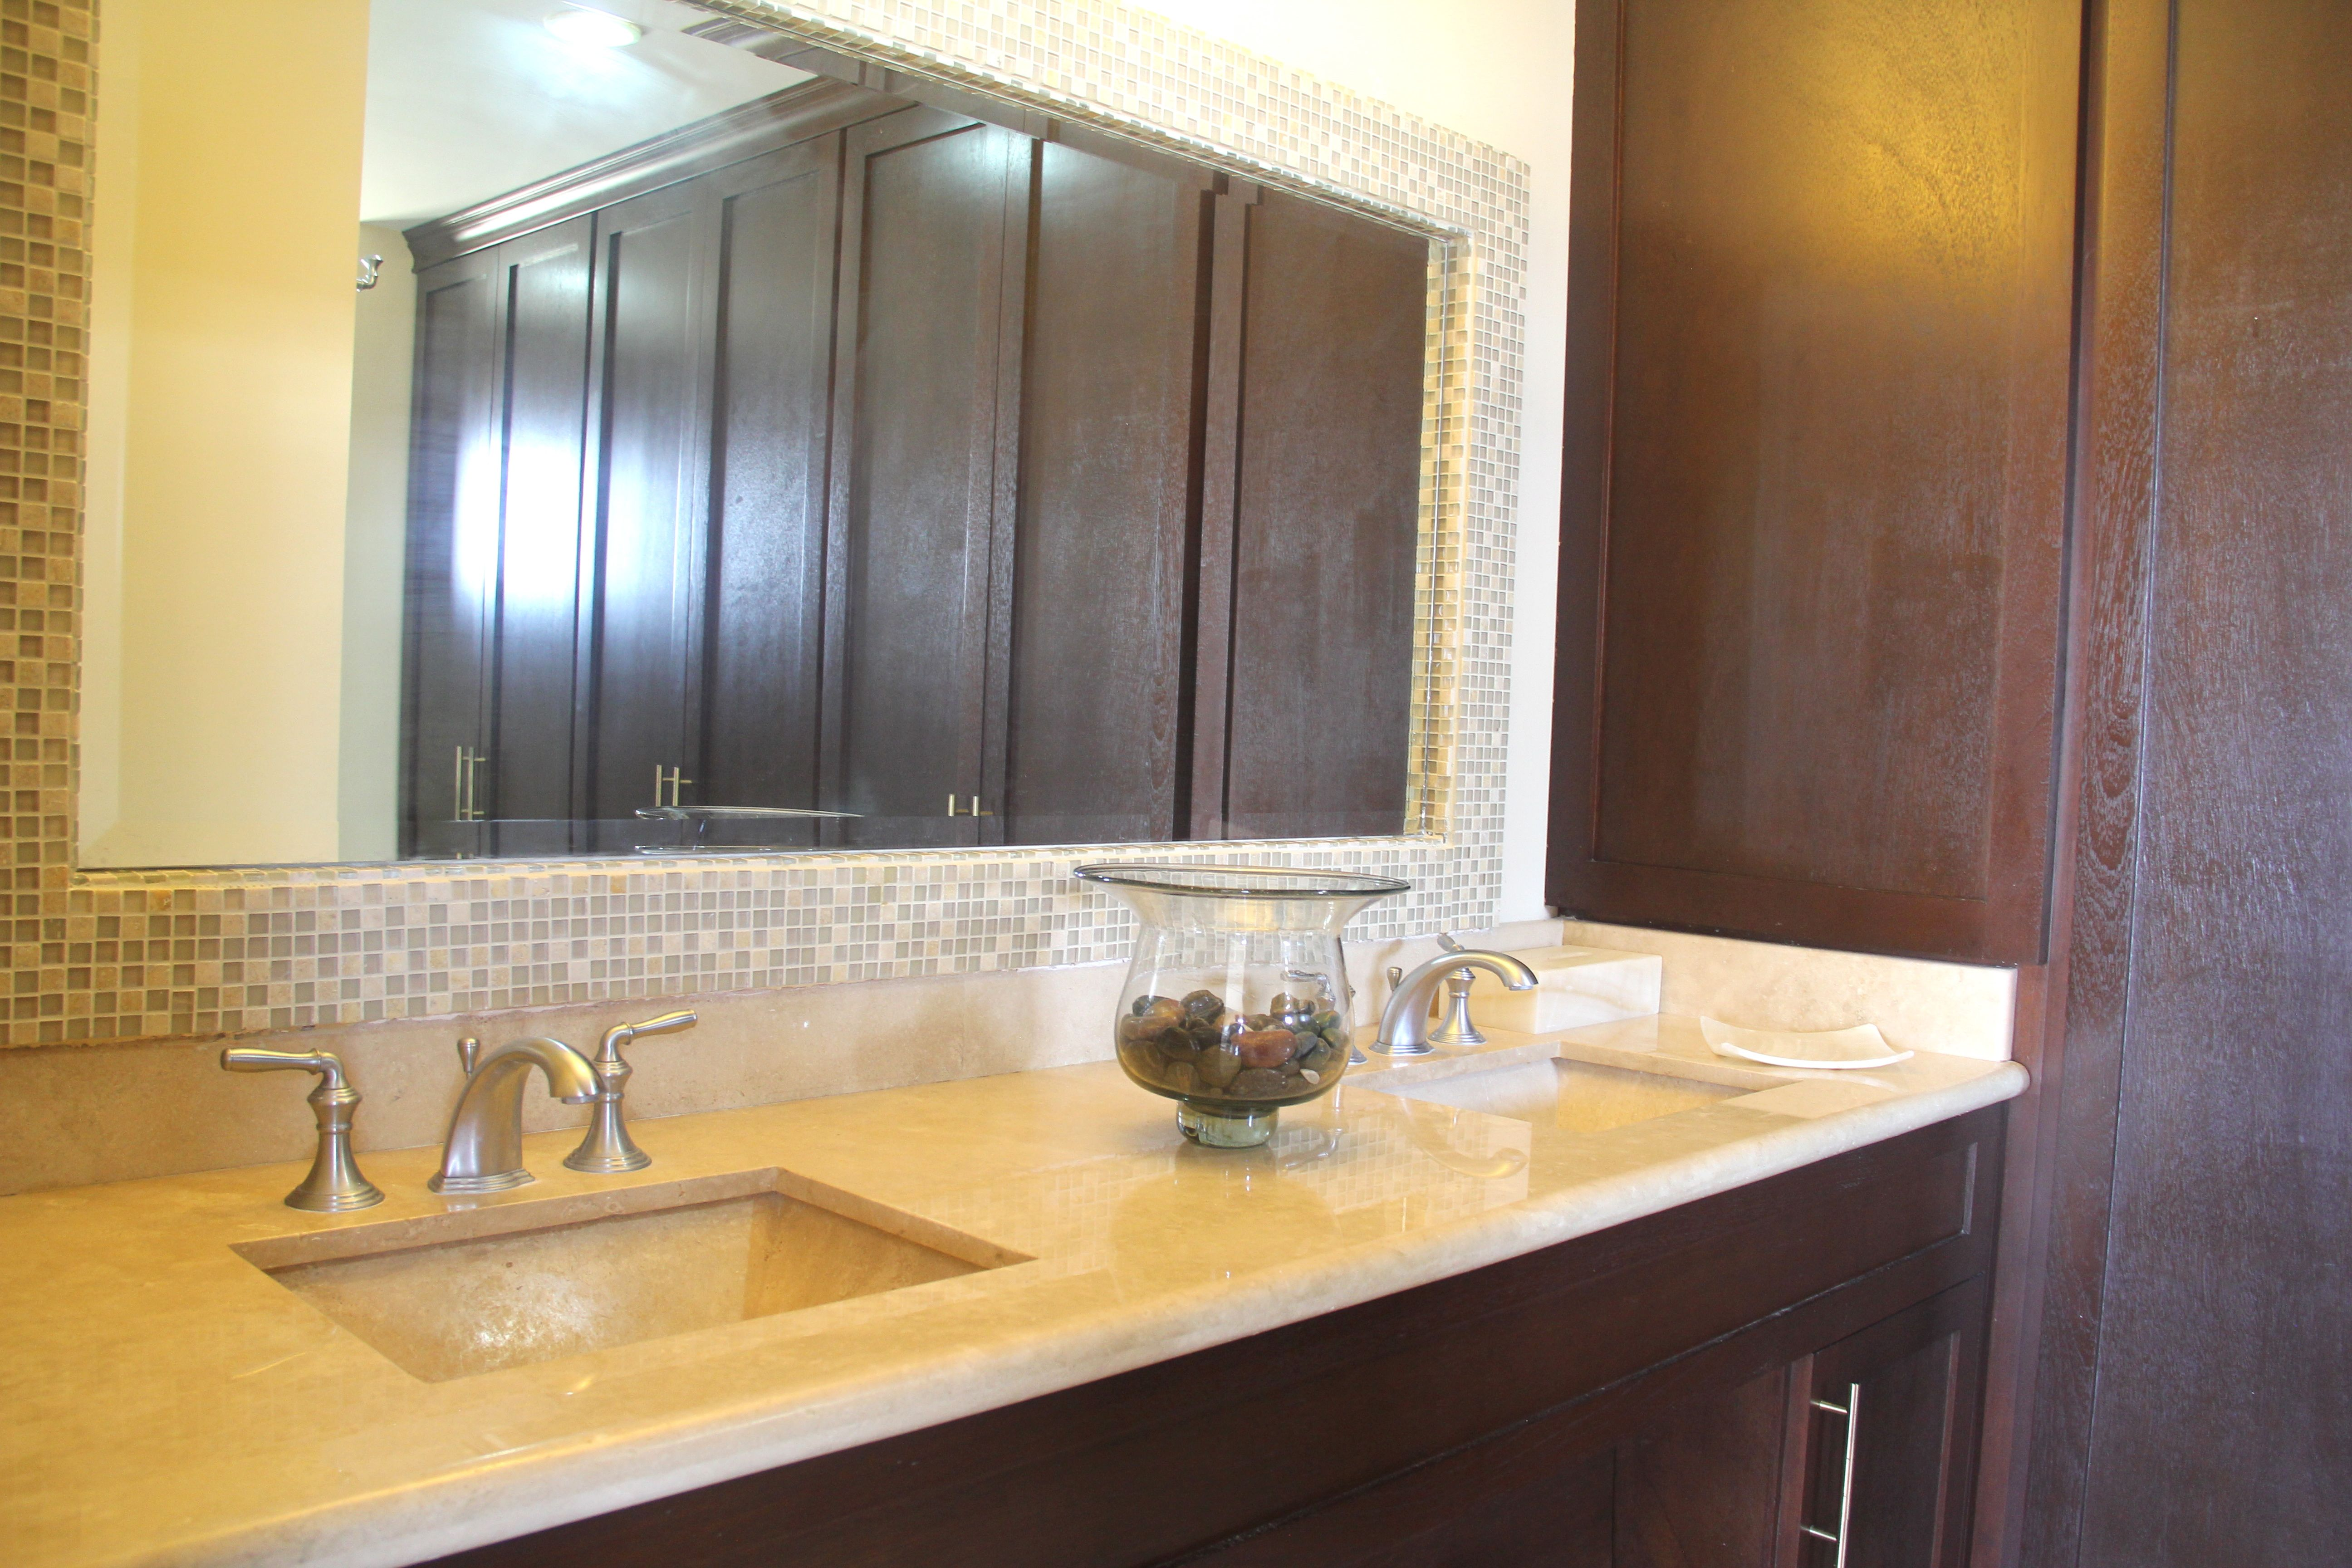 His and hers sinks in master bath.